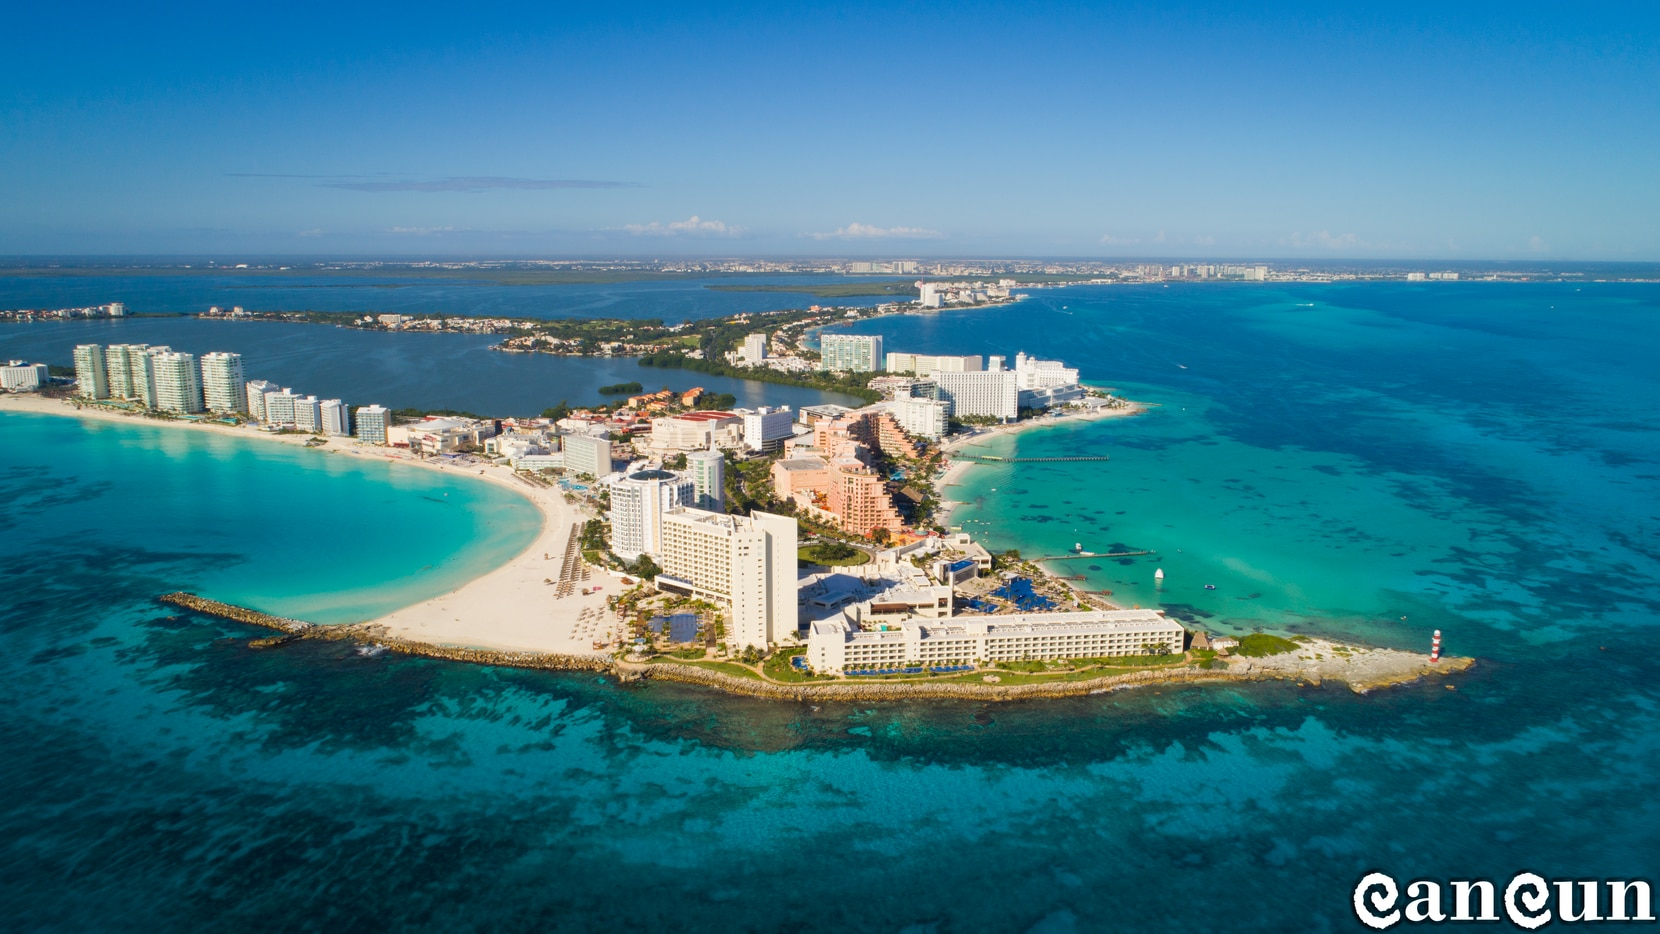 Cancun remains one of the top international destinations for U.S. travelers.